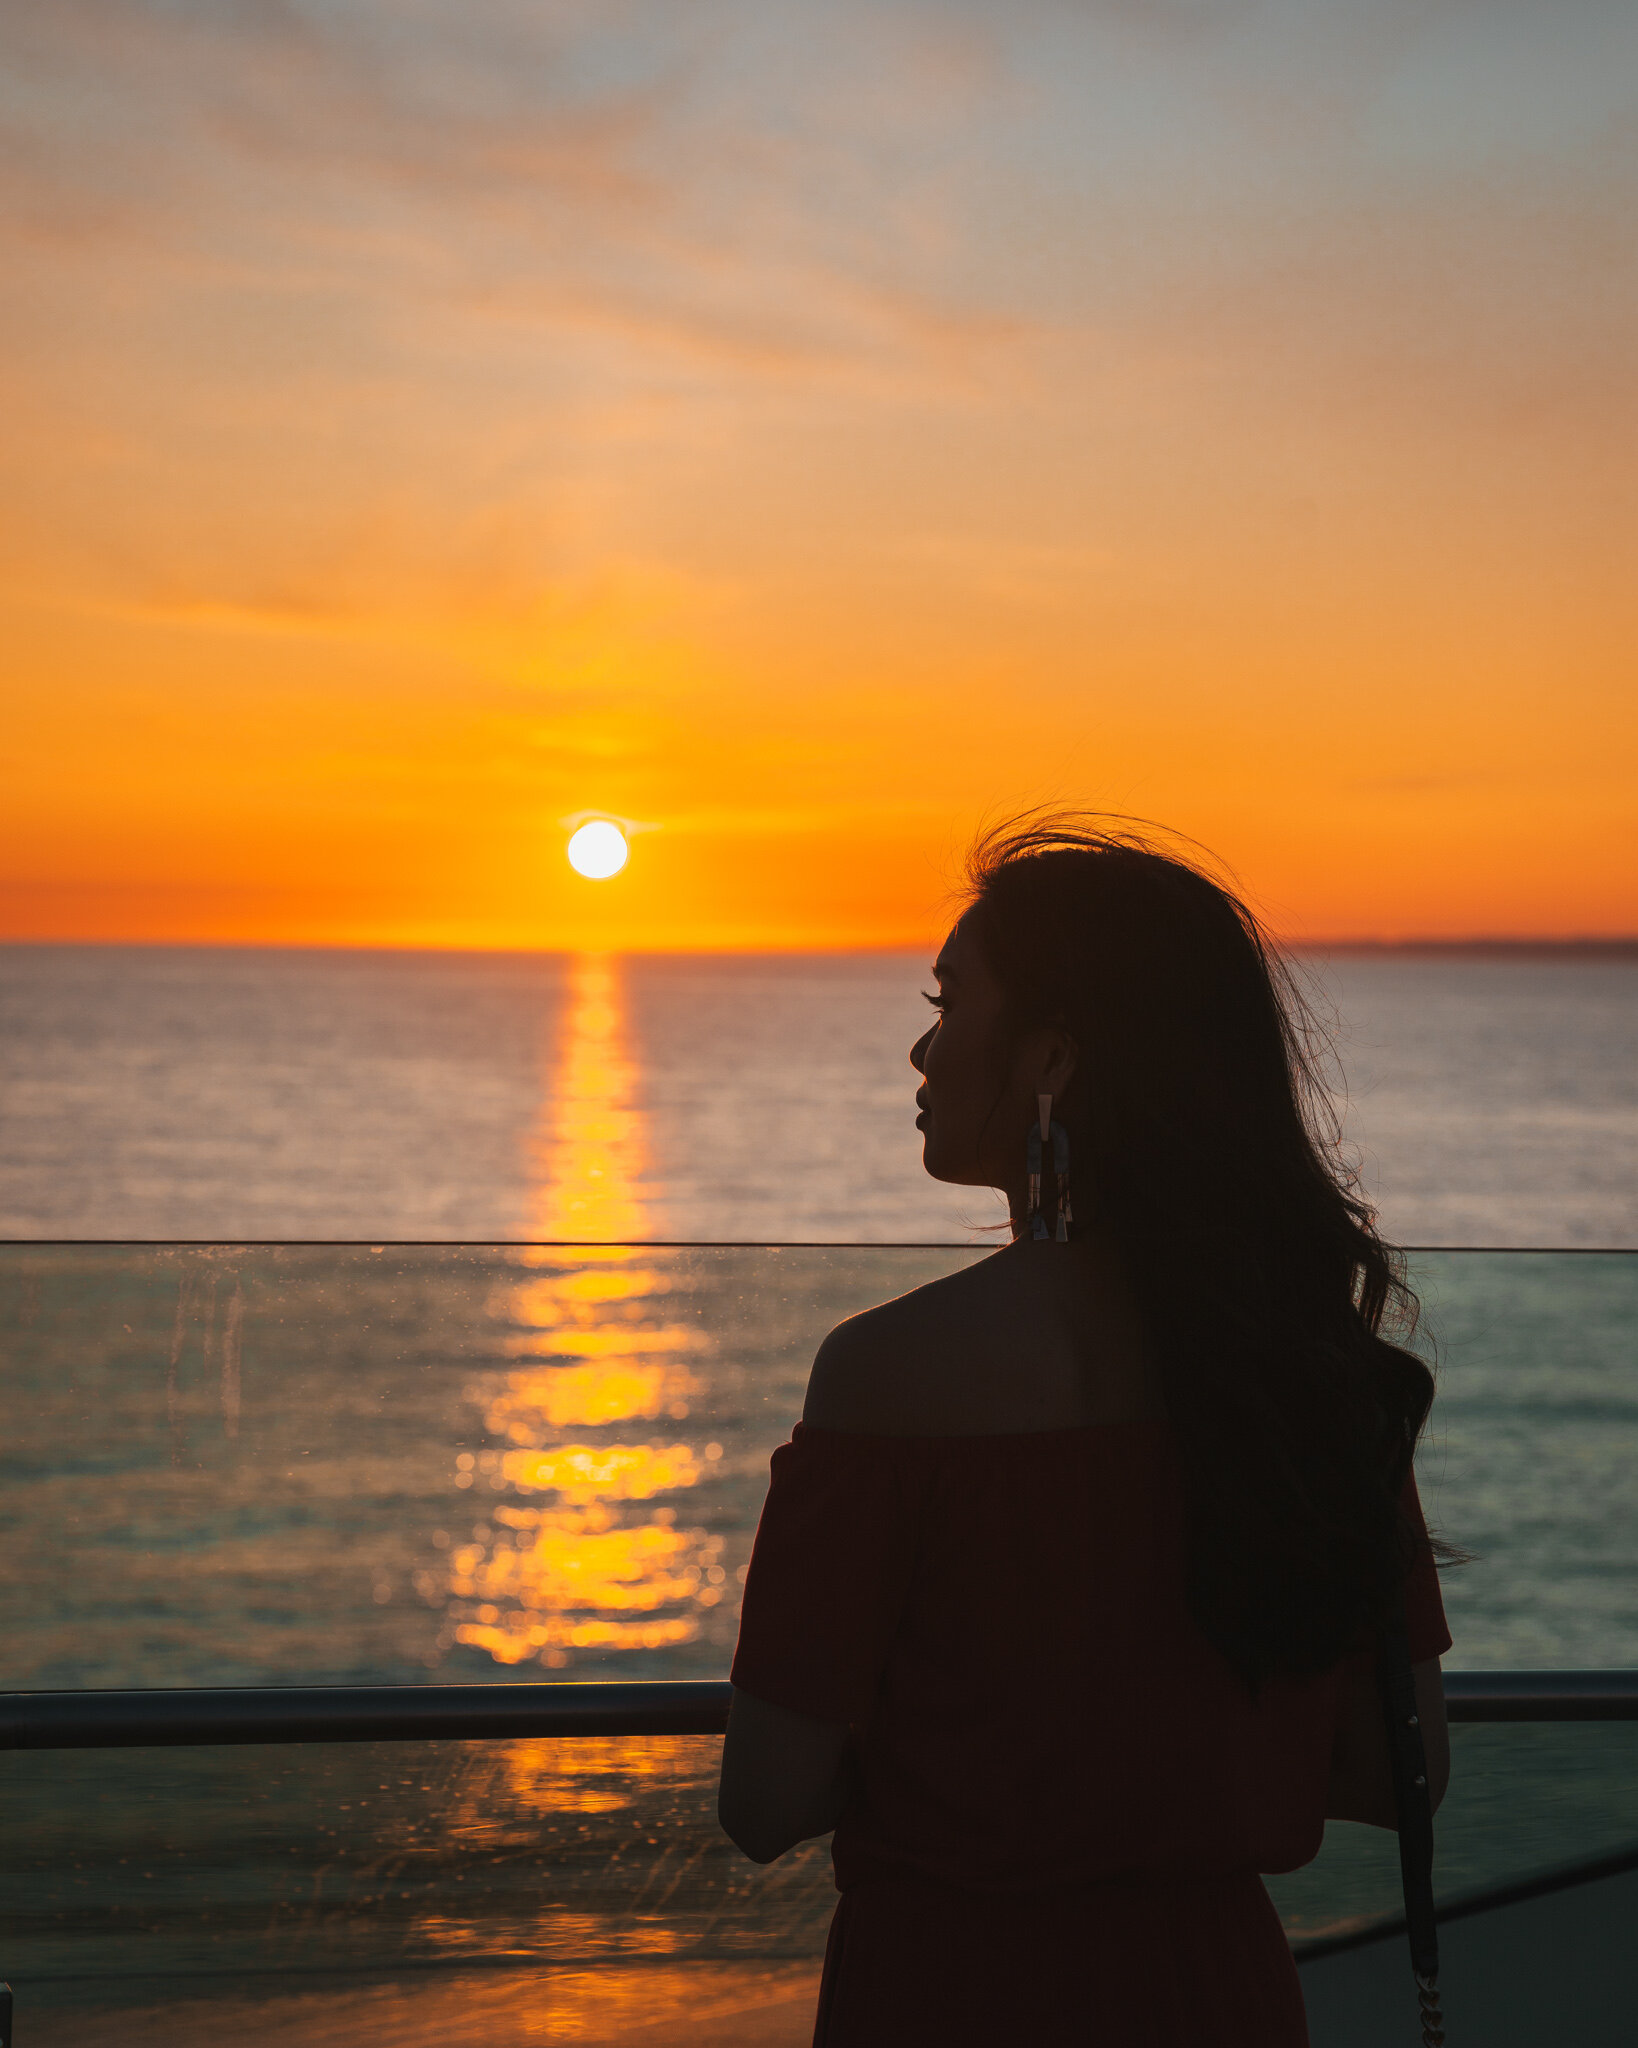 Sunset on a sea day // Cruise Review: 11-Day New England & Canada on the Seabourn Quest // #readysetjetset #canada #cruise #luxury #travel #cruising